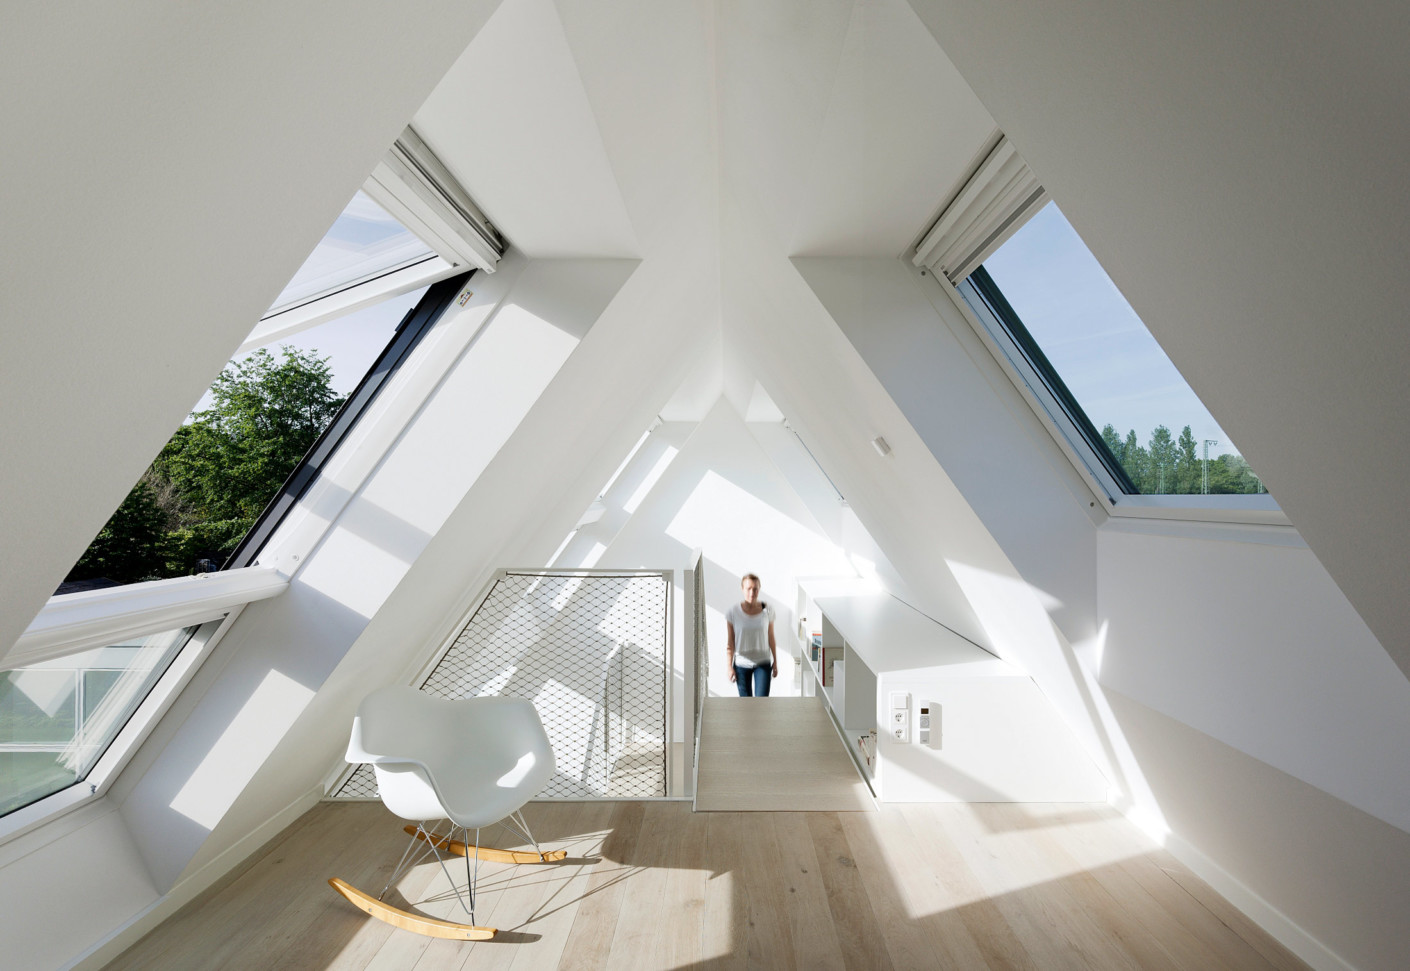 Roof Window Lichtaktiv House By Velux Stylepark - Bungalow Mit Dachausbau